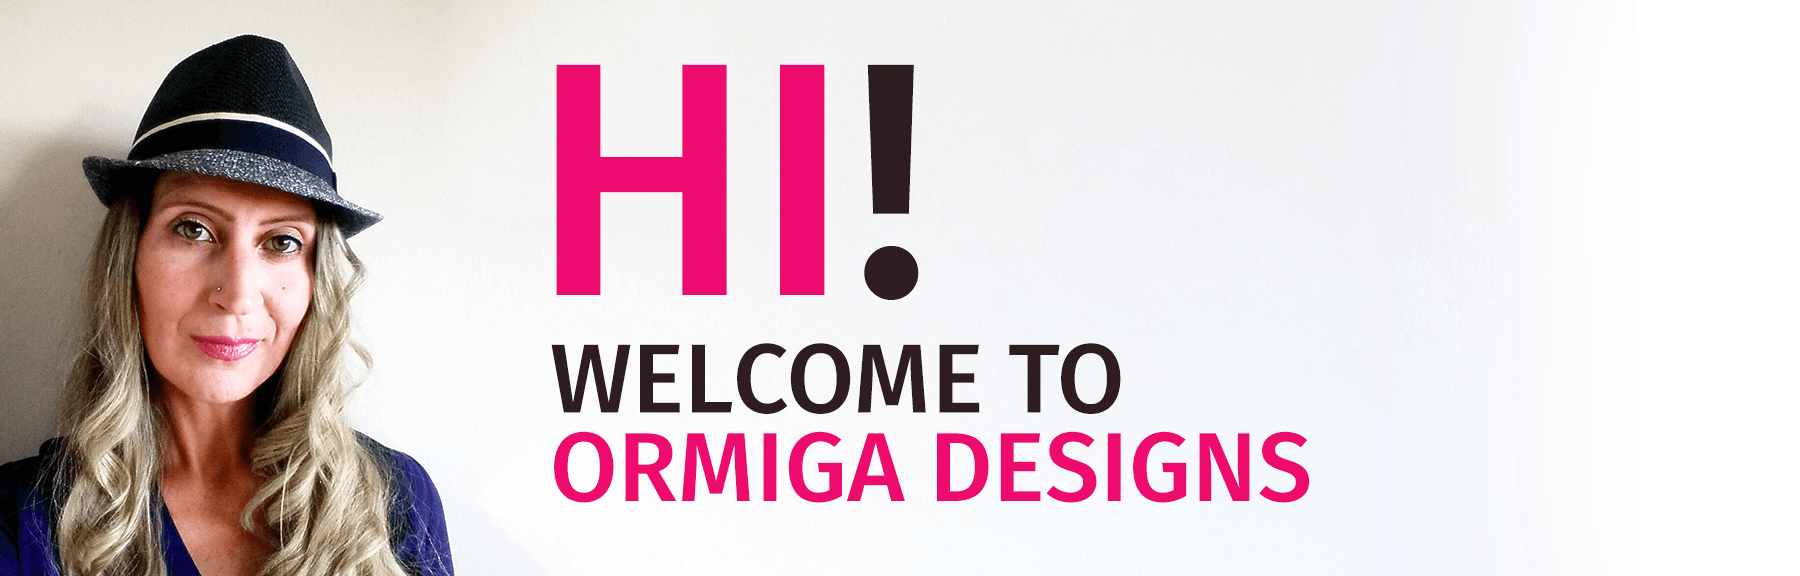 Welcome to Ormiga Designs image